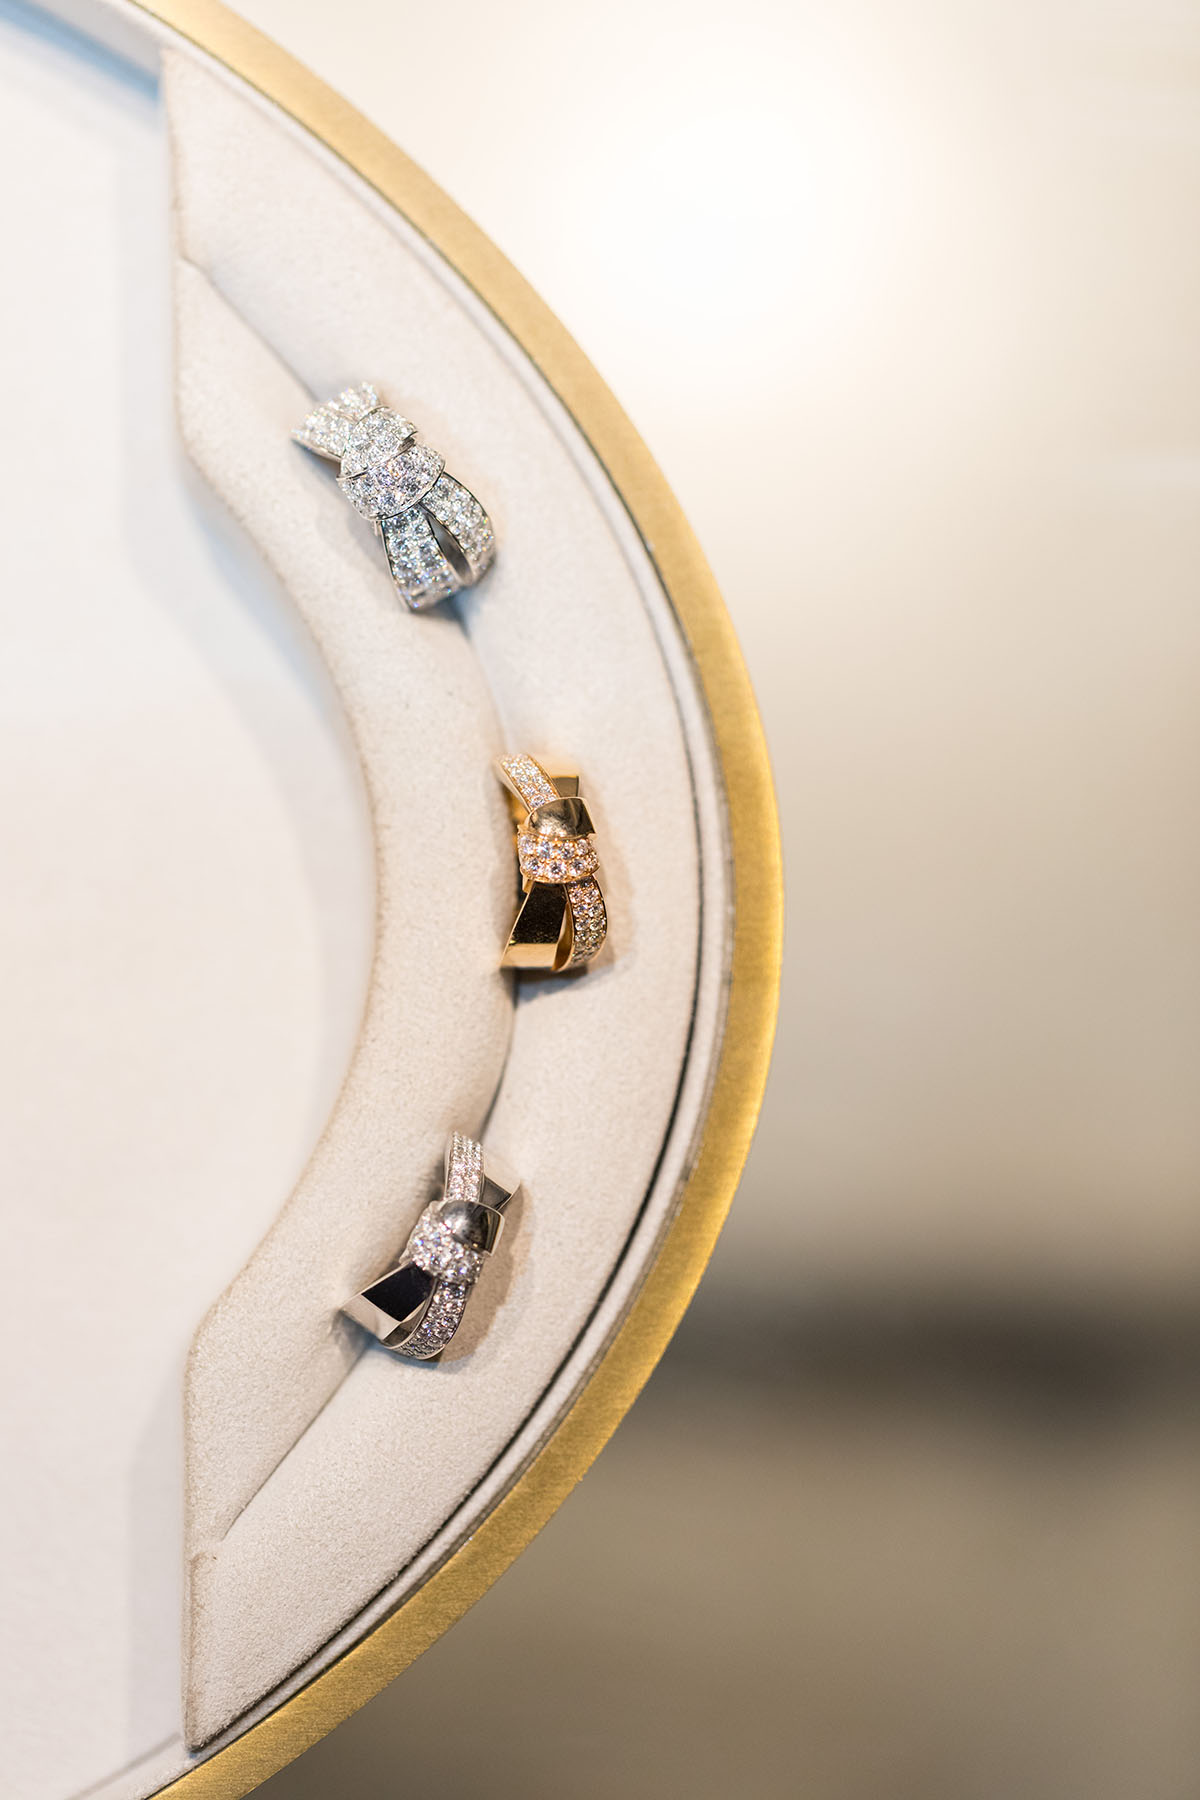 New ring collection from Chaumet by Loesje Kessels Event Photographer Dubai